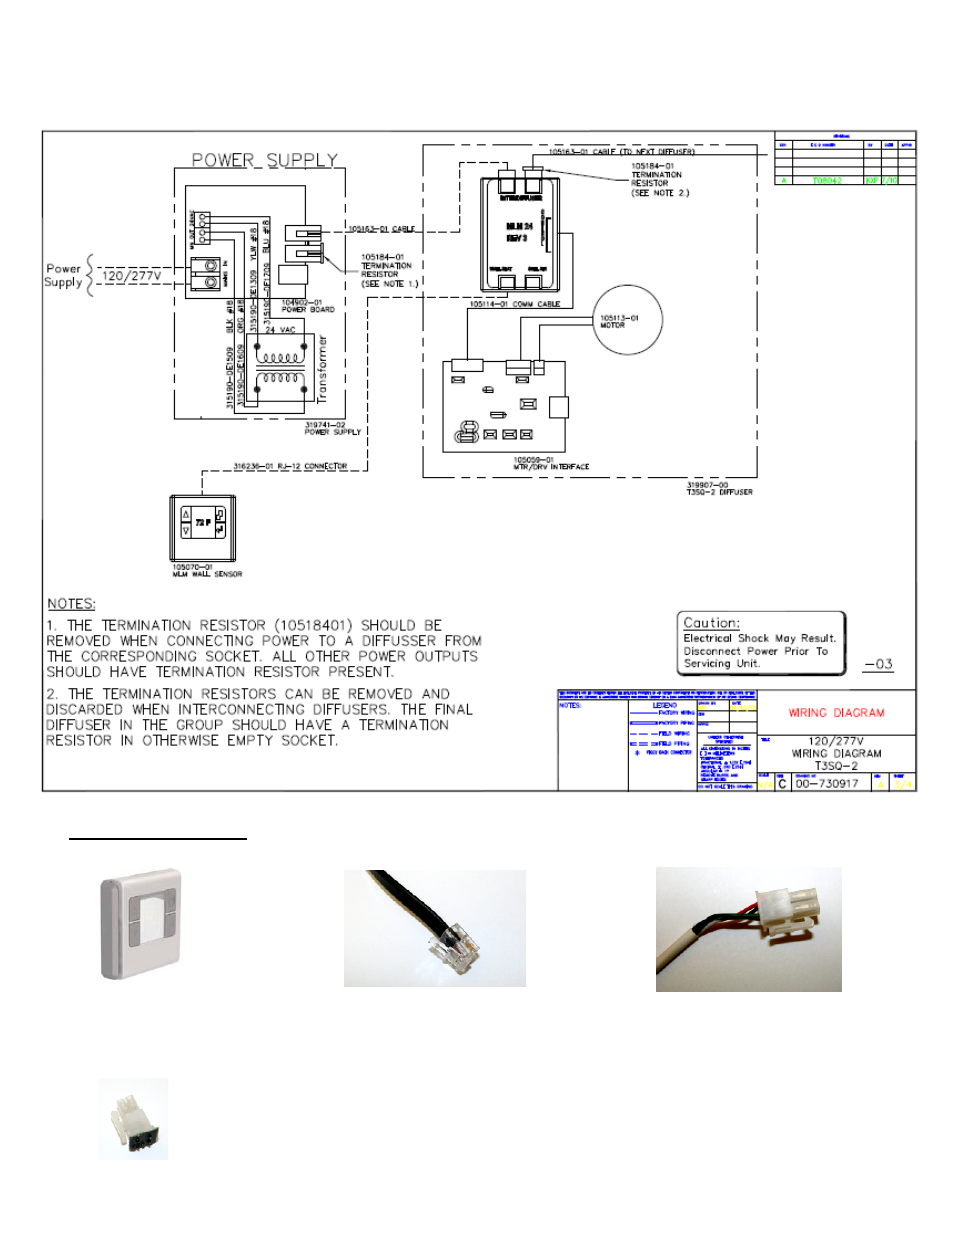 [CSDW_4250]   Titus T3SQ-2 IOM User Manual | Page 7 / 8 | Titus Wiring Diagram |  | Manuals Directory